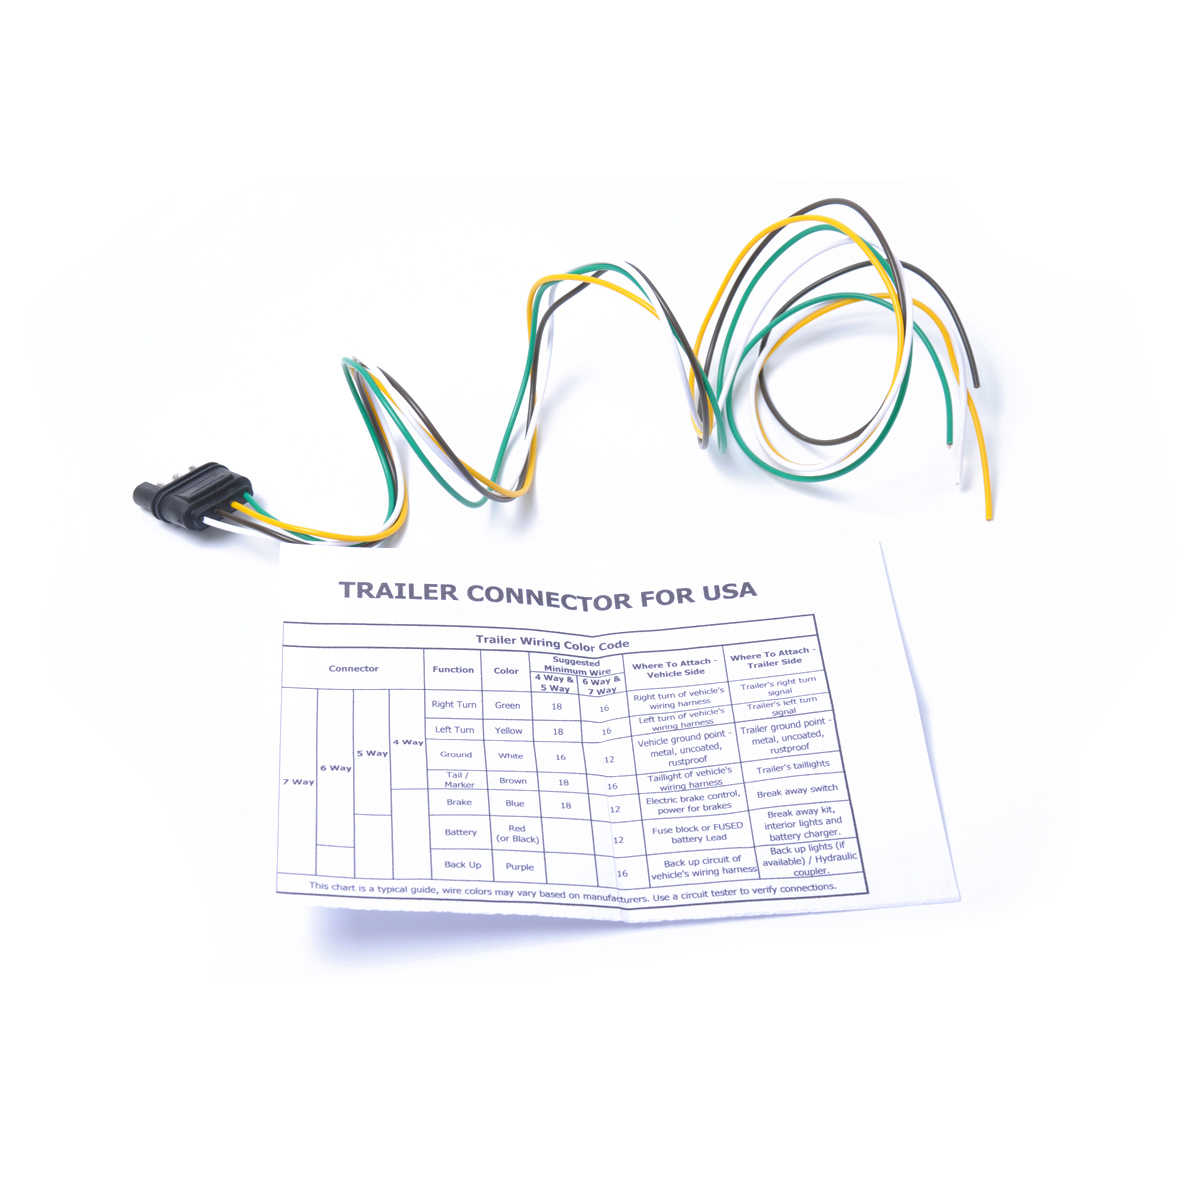 4 prong trailer connector wiring diagram for 100cm 4 way 4 pin trailer wire extension flat connector plug and  100cm 4 way 4 pin trailer wire